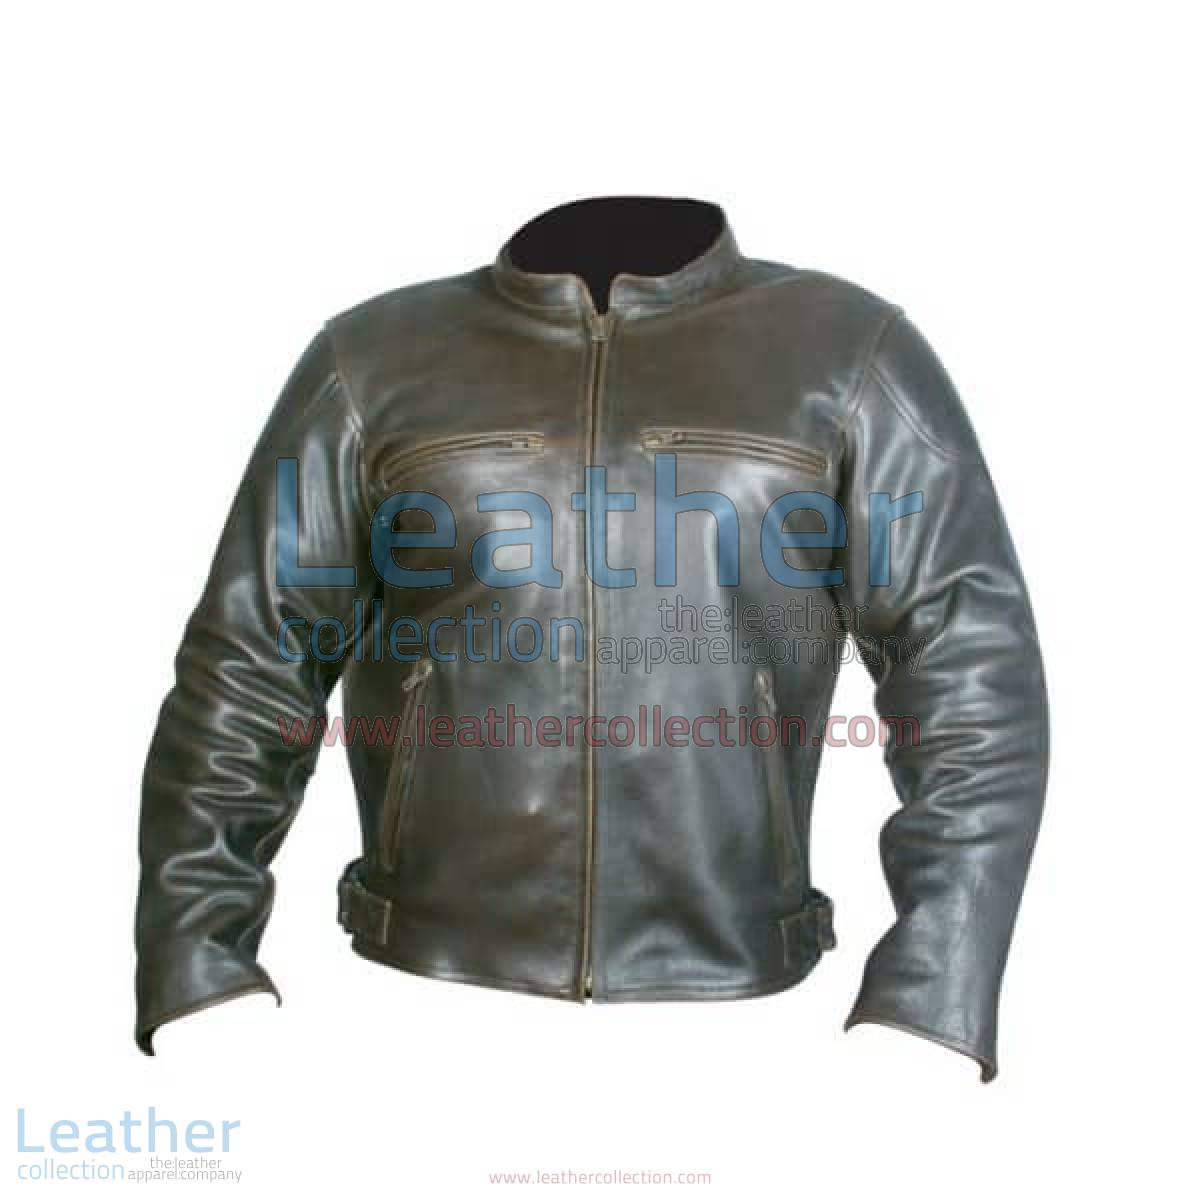 Retro Brown Leather Jacket | retro brown leather jacket